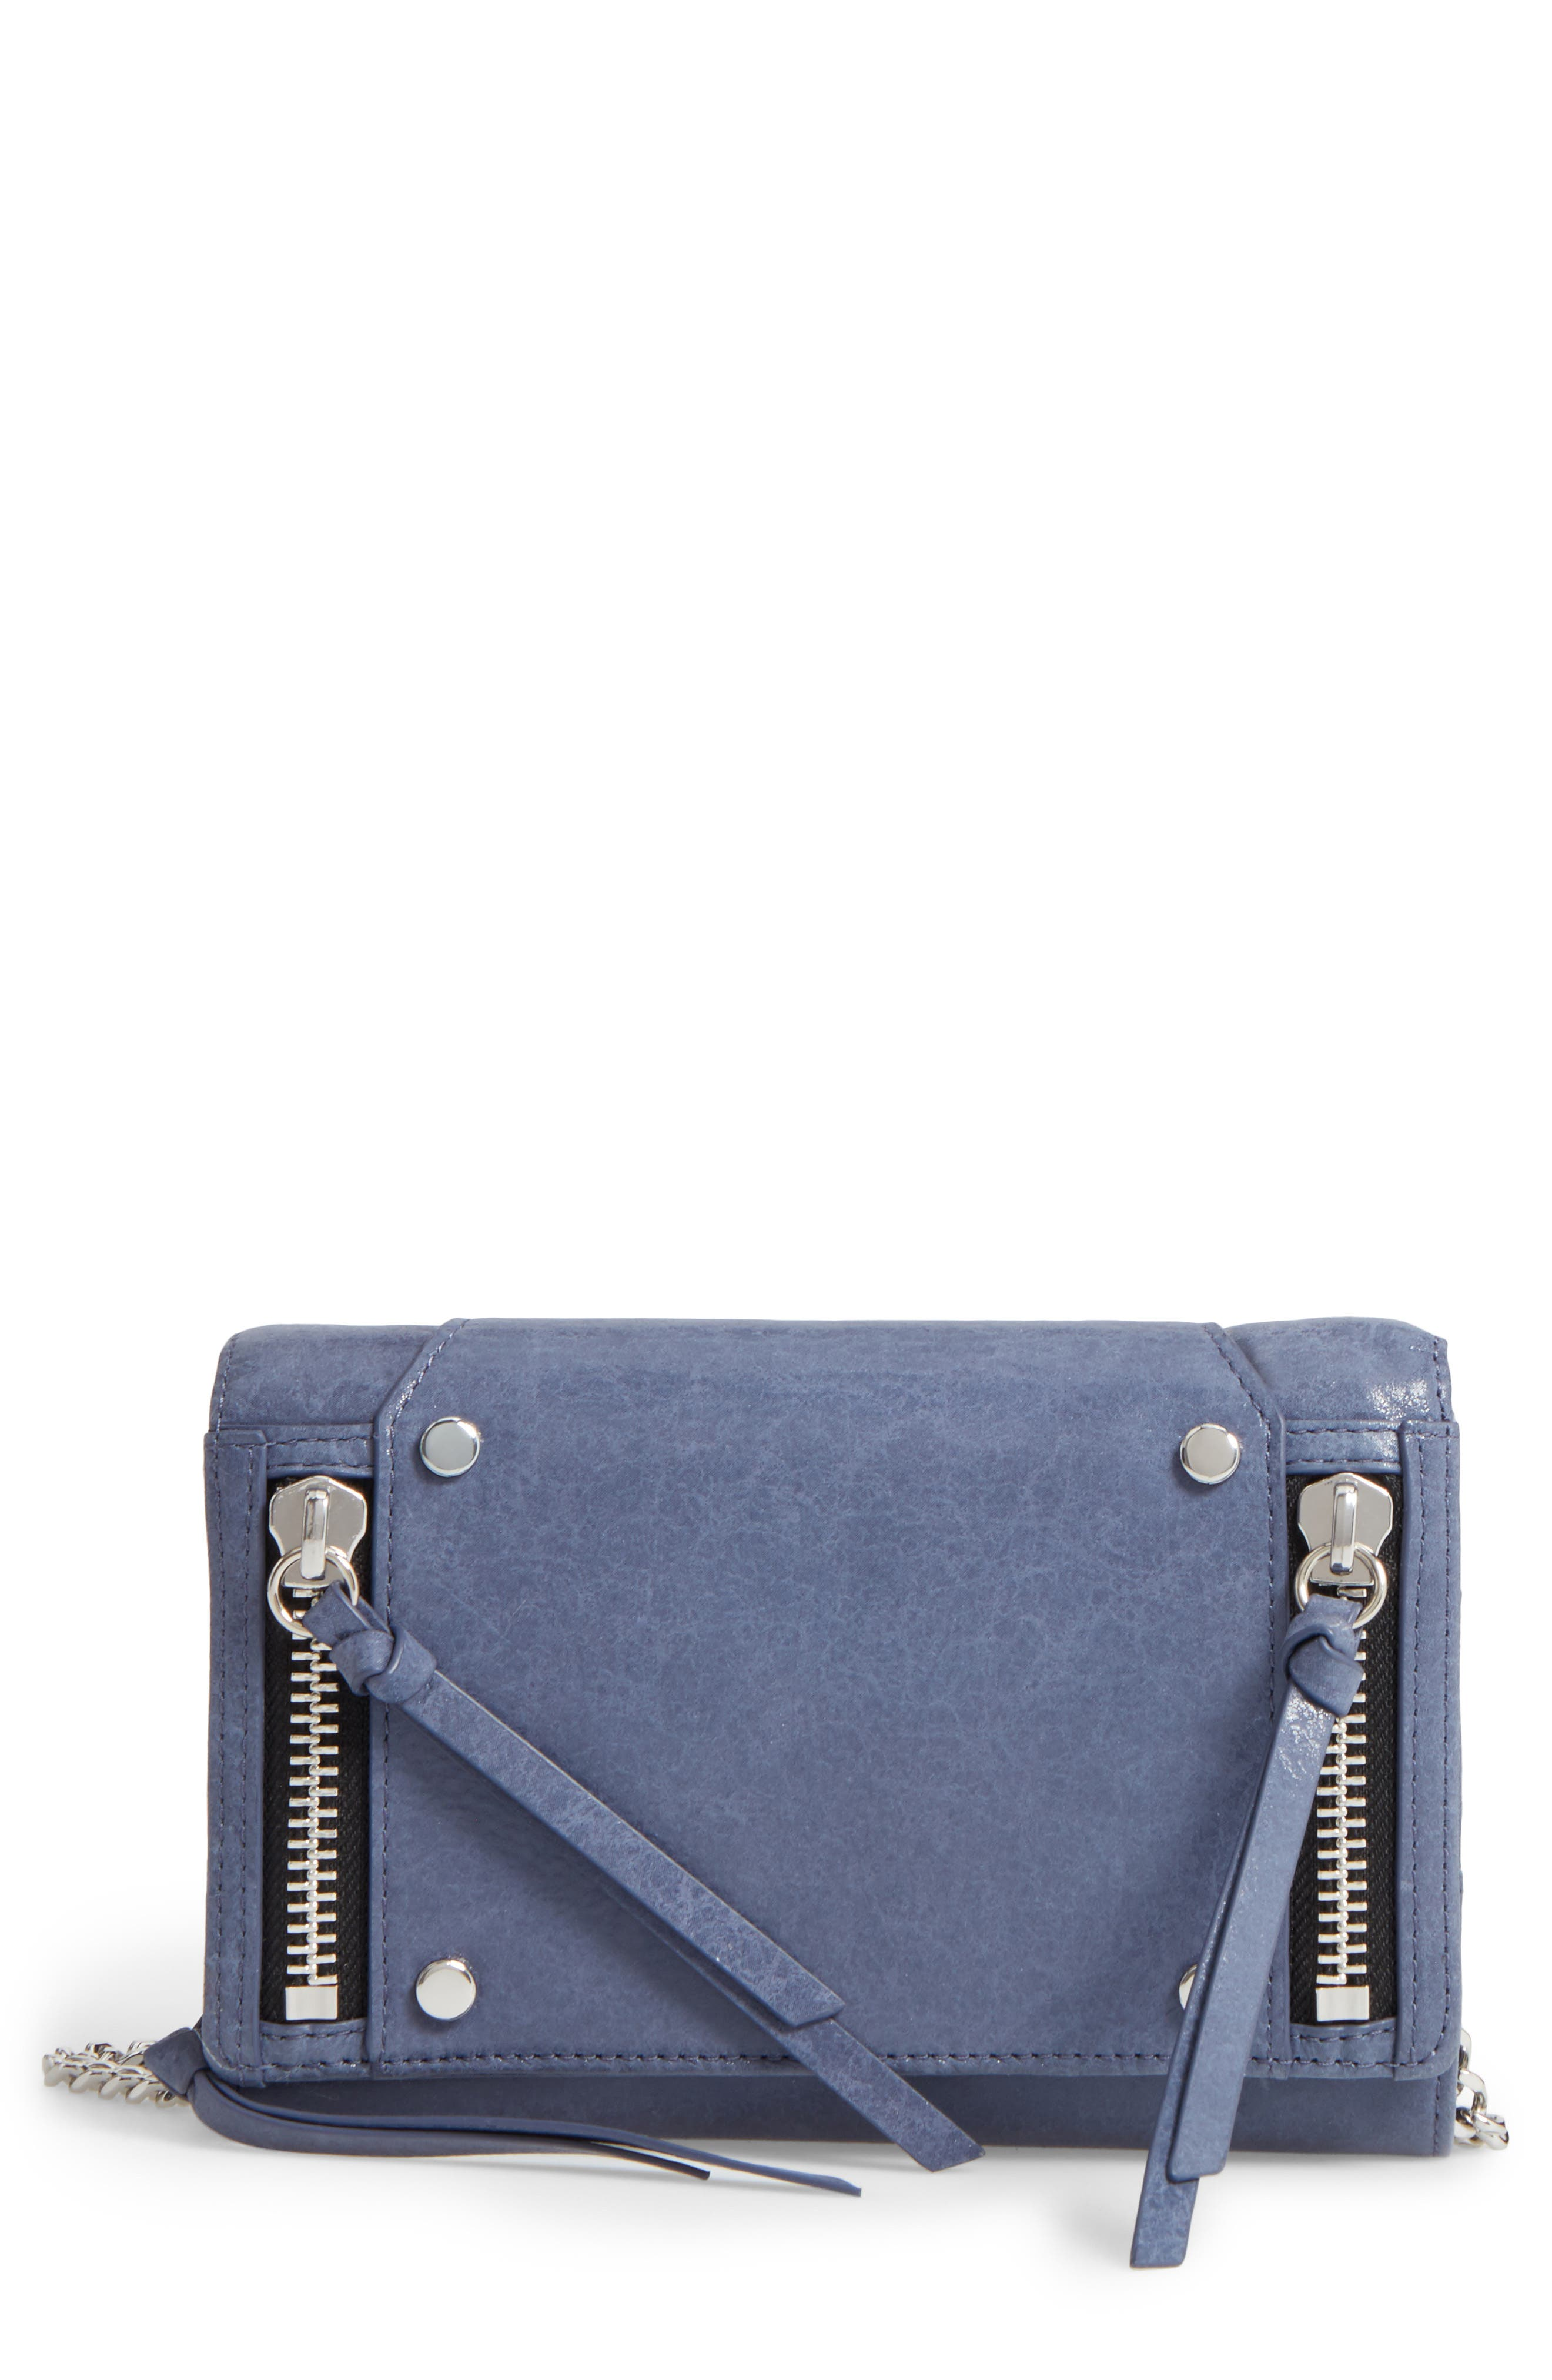 Alternate Image 1 Selected - Botkier Logan Leather Crossbody Wallet (Nordstrom Exclusive)